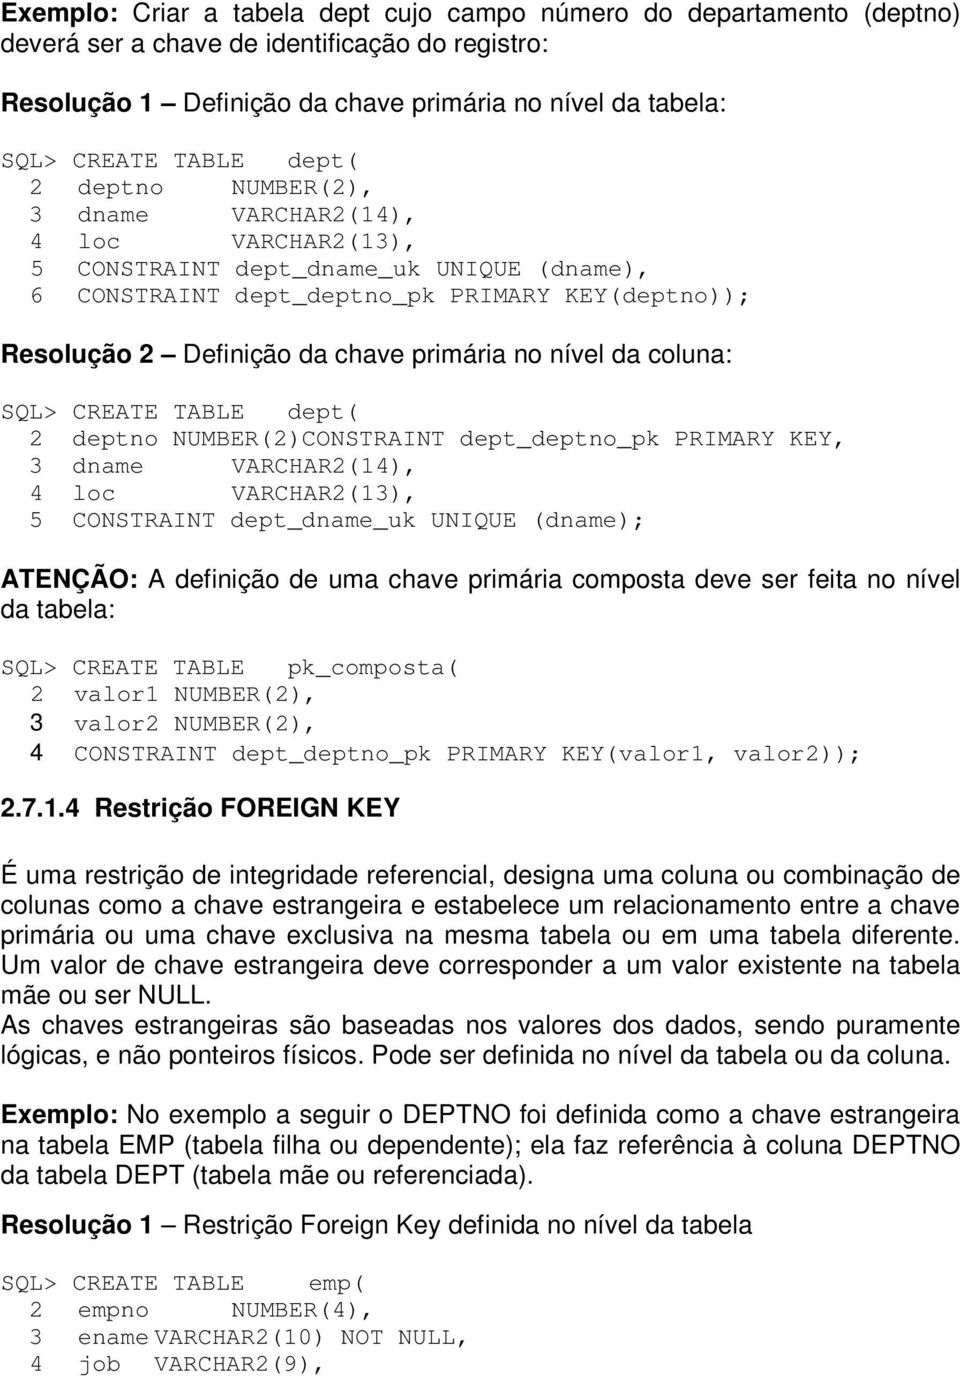 primária no nível da coluna: SQL> CREATE TABLE dept( 2 deptno NUMBER(2)CONSTRAINT dept_deptno_pk PRIMARY KEY, 3 dname VARCHAR2(14), 4 loc VARCHAR2(13), 5 CONSTRAINT dept_dname_uk UNIQUE (dname);